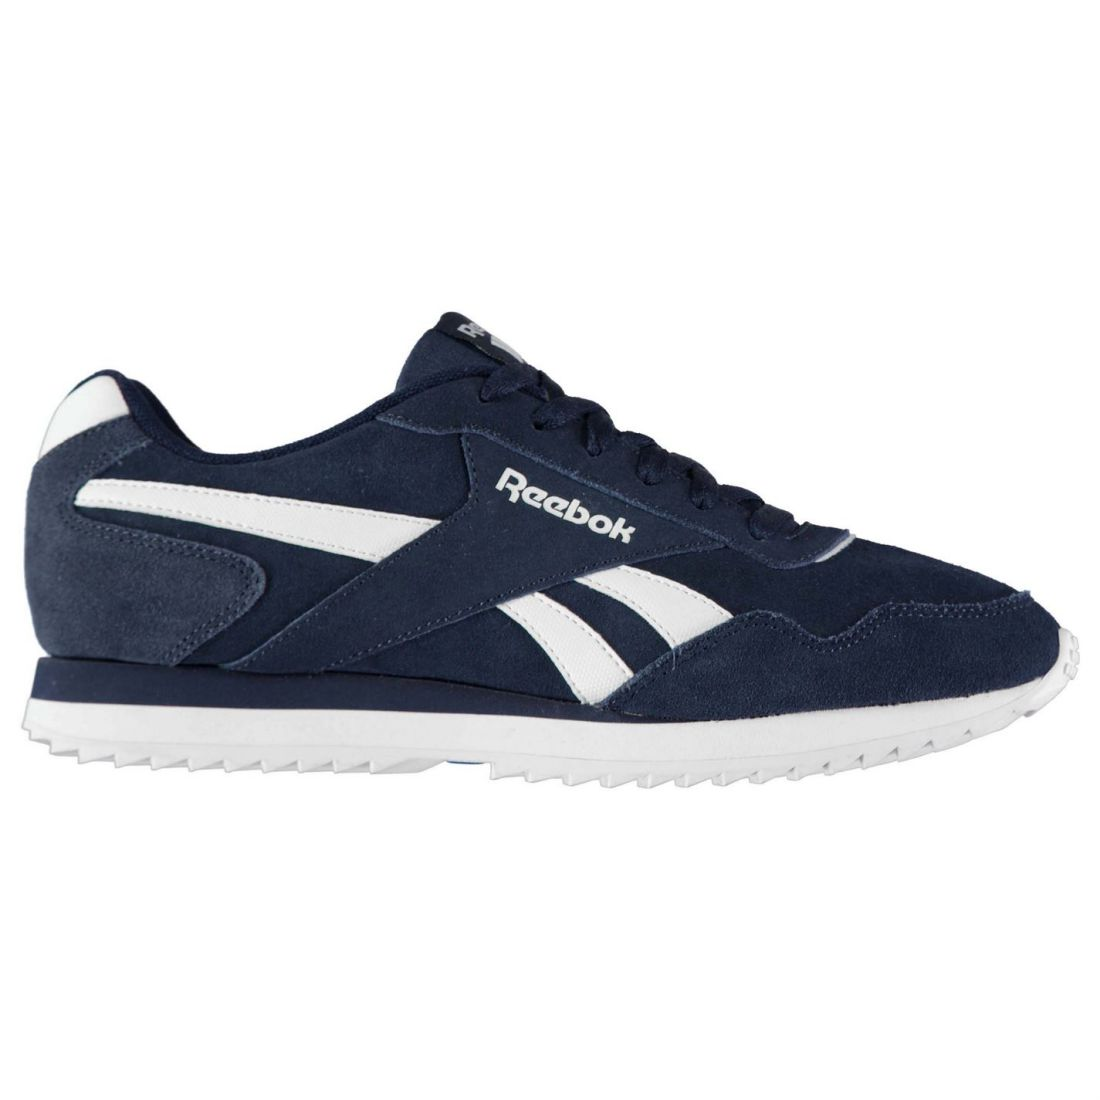 65c4a13210c Image is loading Reebok-Mens-Royal-Glide-Ripple-Suede-Trainers-Sneakers-